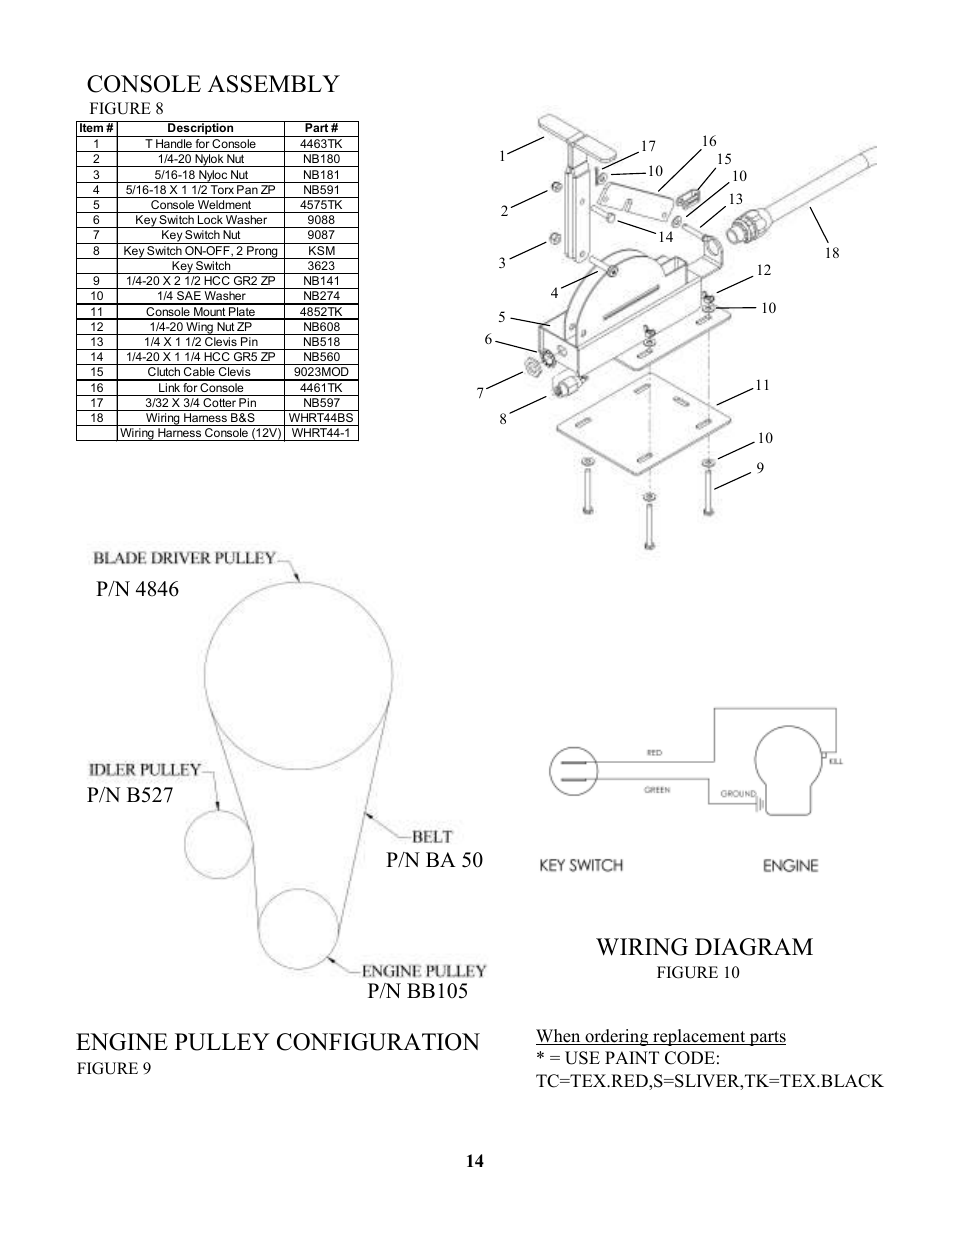 console assembly  wiring diagram  engine pulley configuration